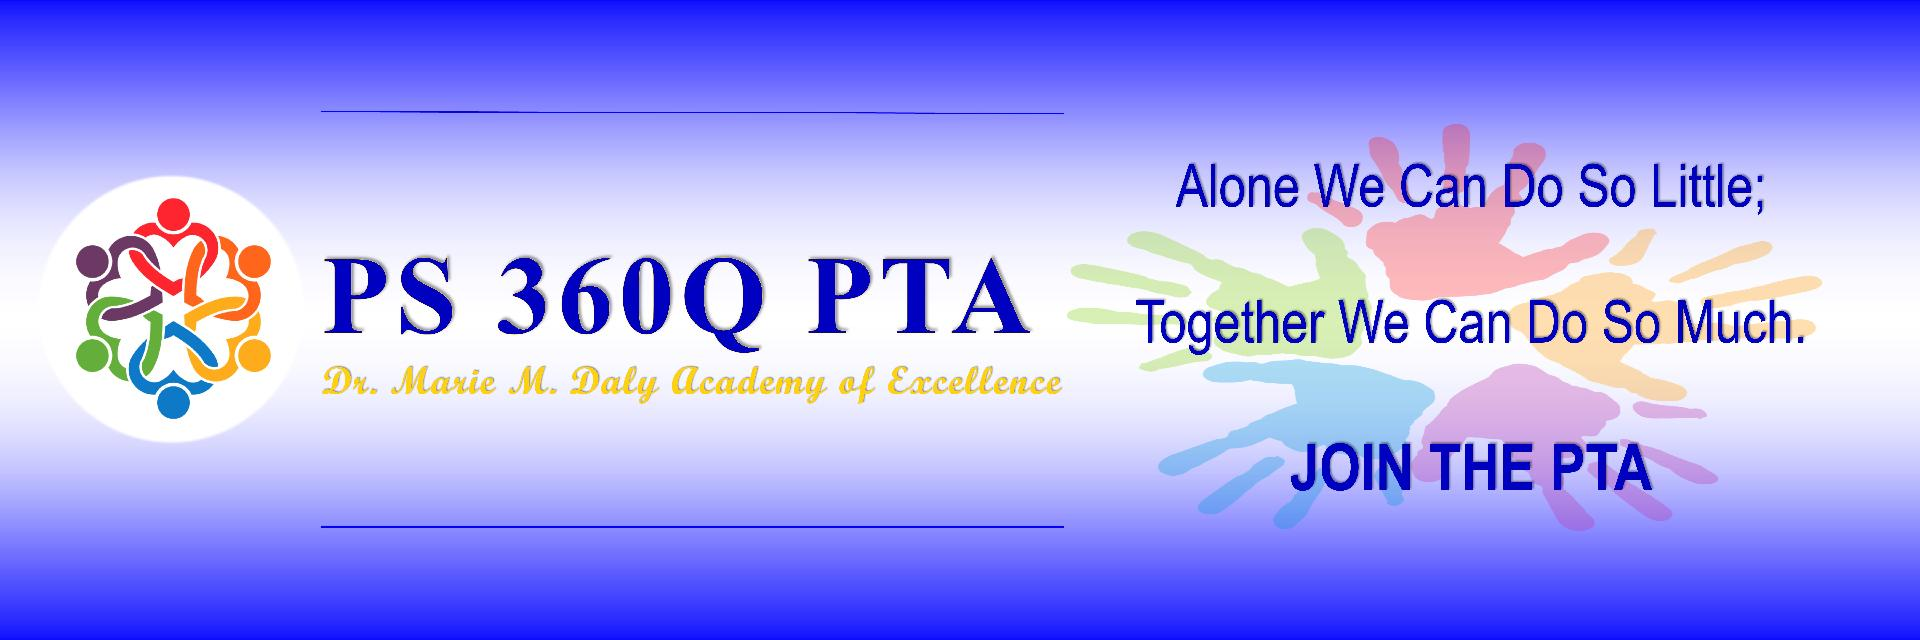 PS 360Q PTA The Dr. Marie M. Daly Academy of Excellence